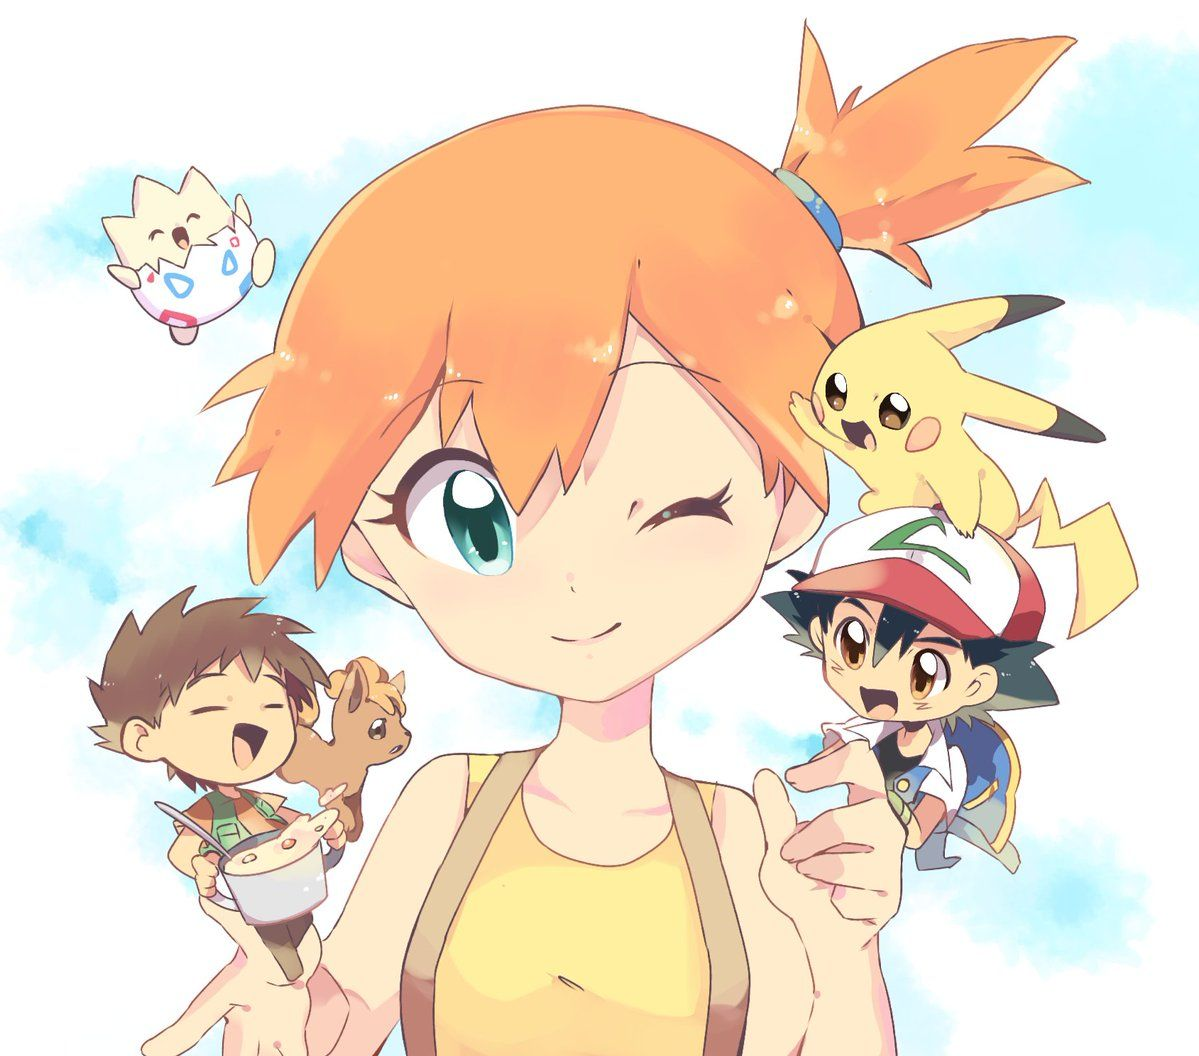 Too Cute Misty With Chibi Versions Of Ash Brock Pikachu Togepi